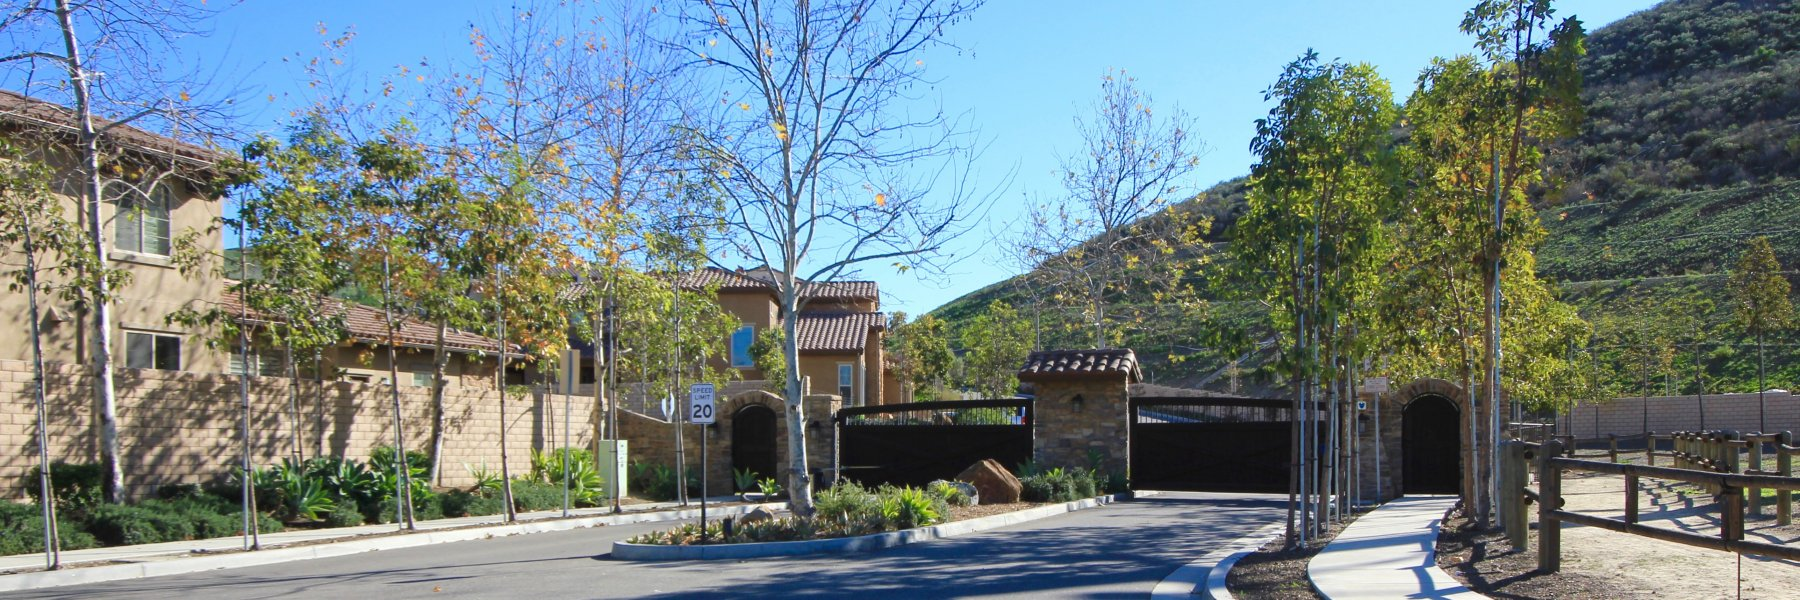 Valinda is a private gated community located in San Juan Capistrano California